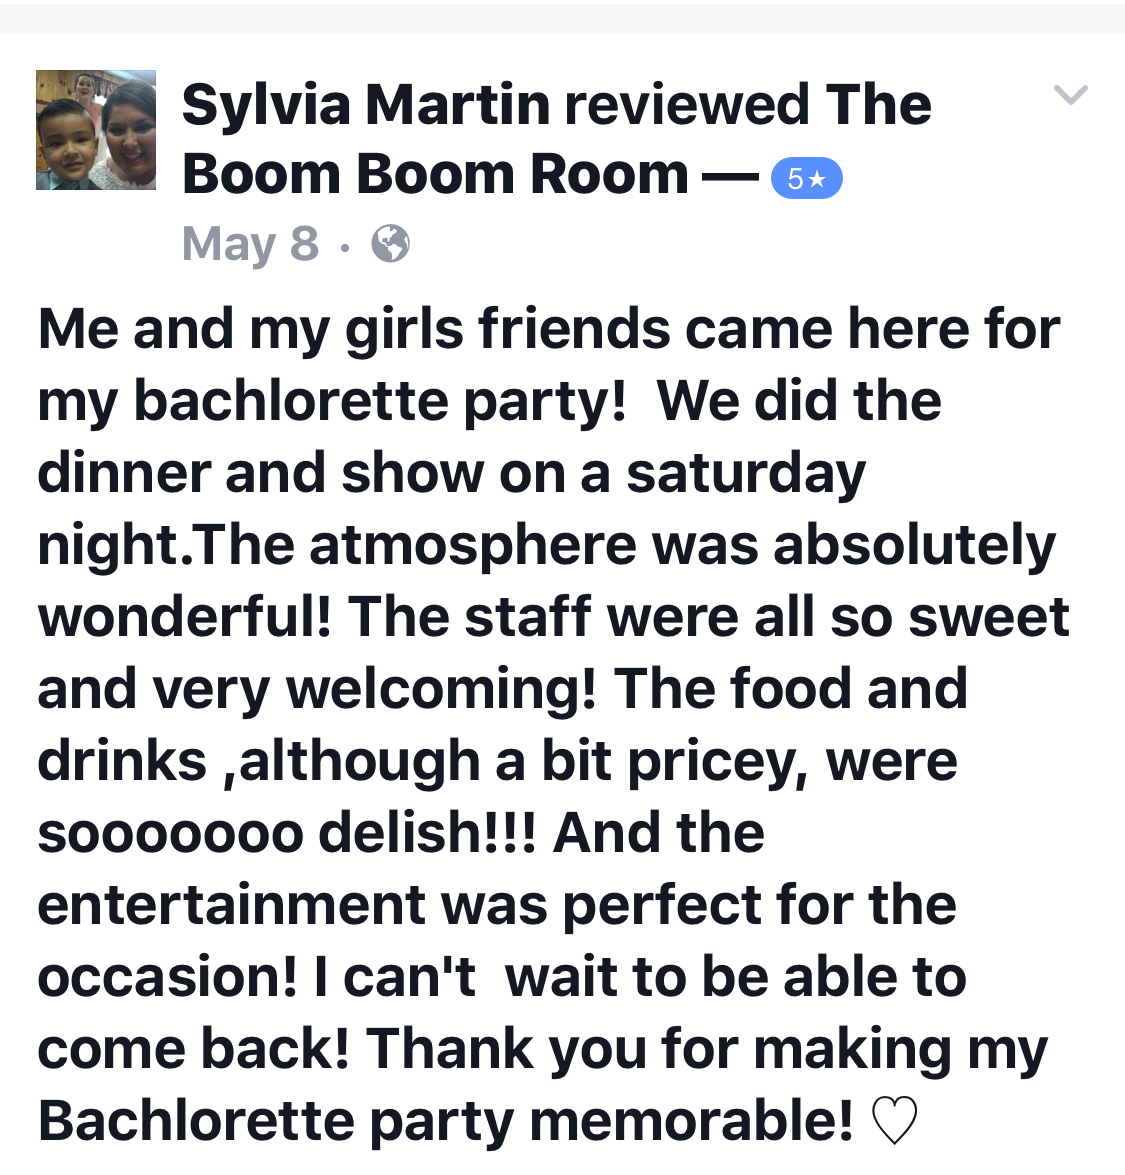 The Boom Boom Room St. Louis Burlesque Positive Reviews -131.png